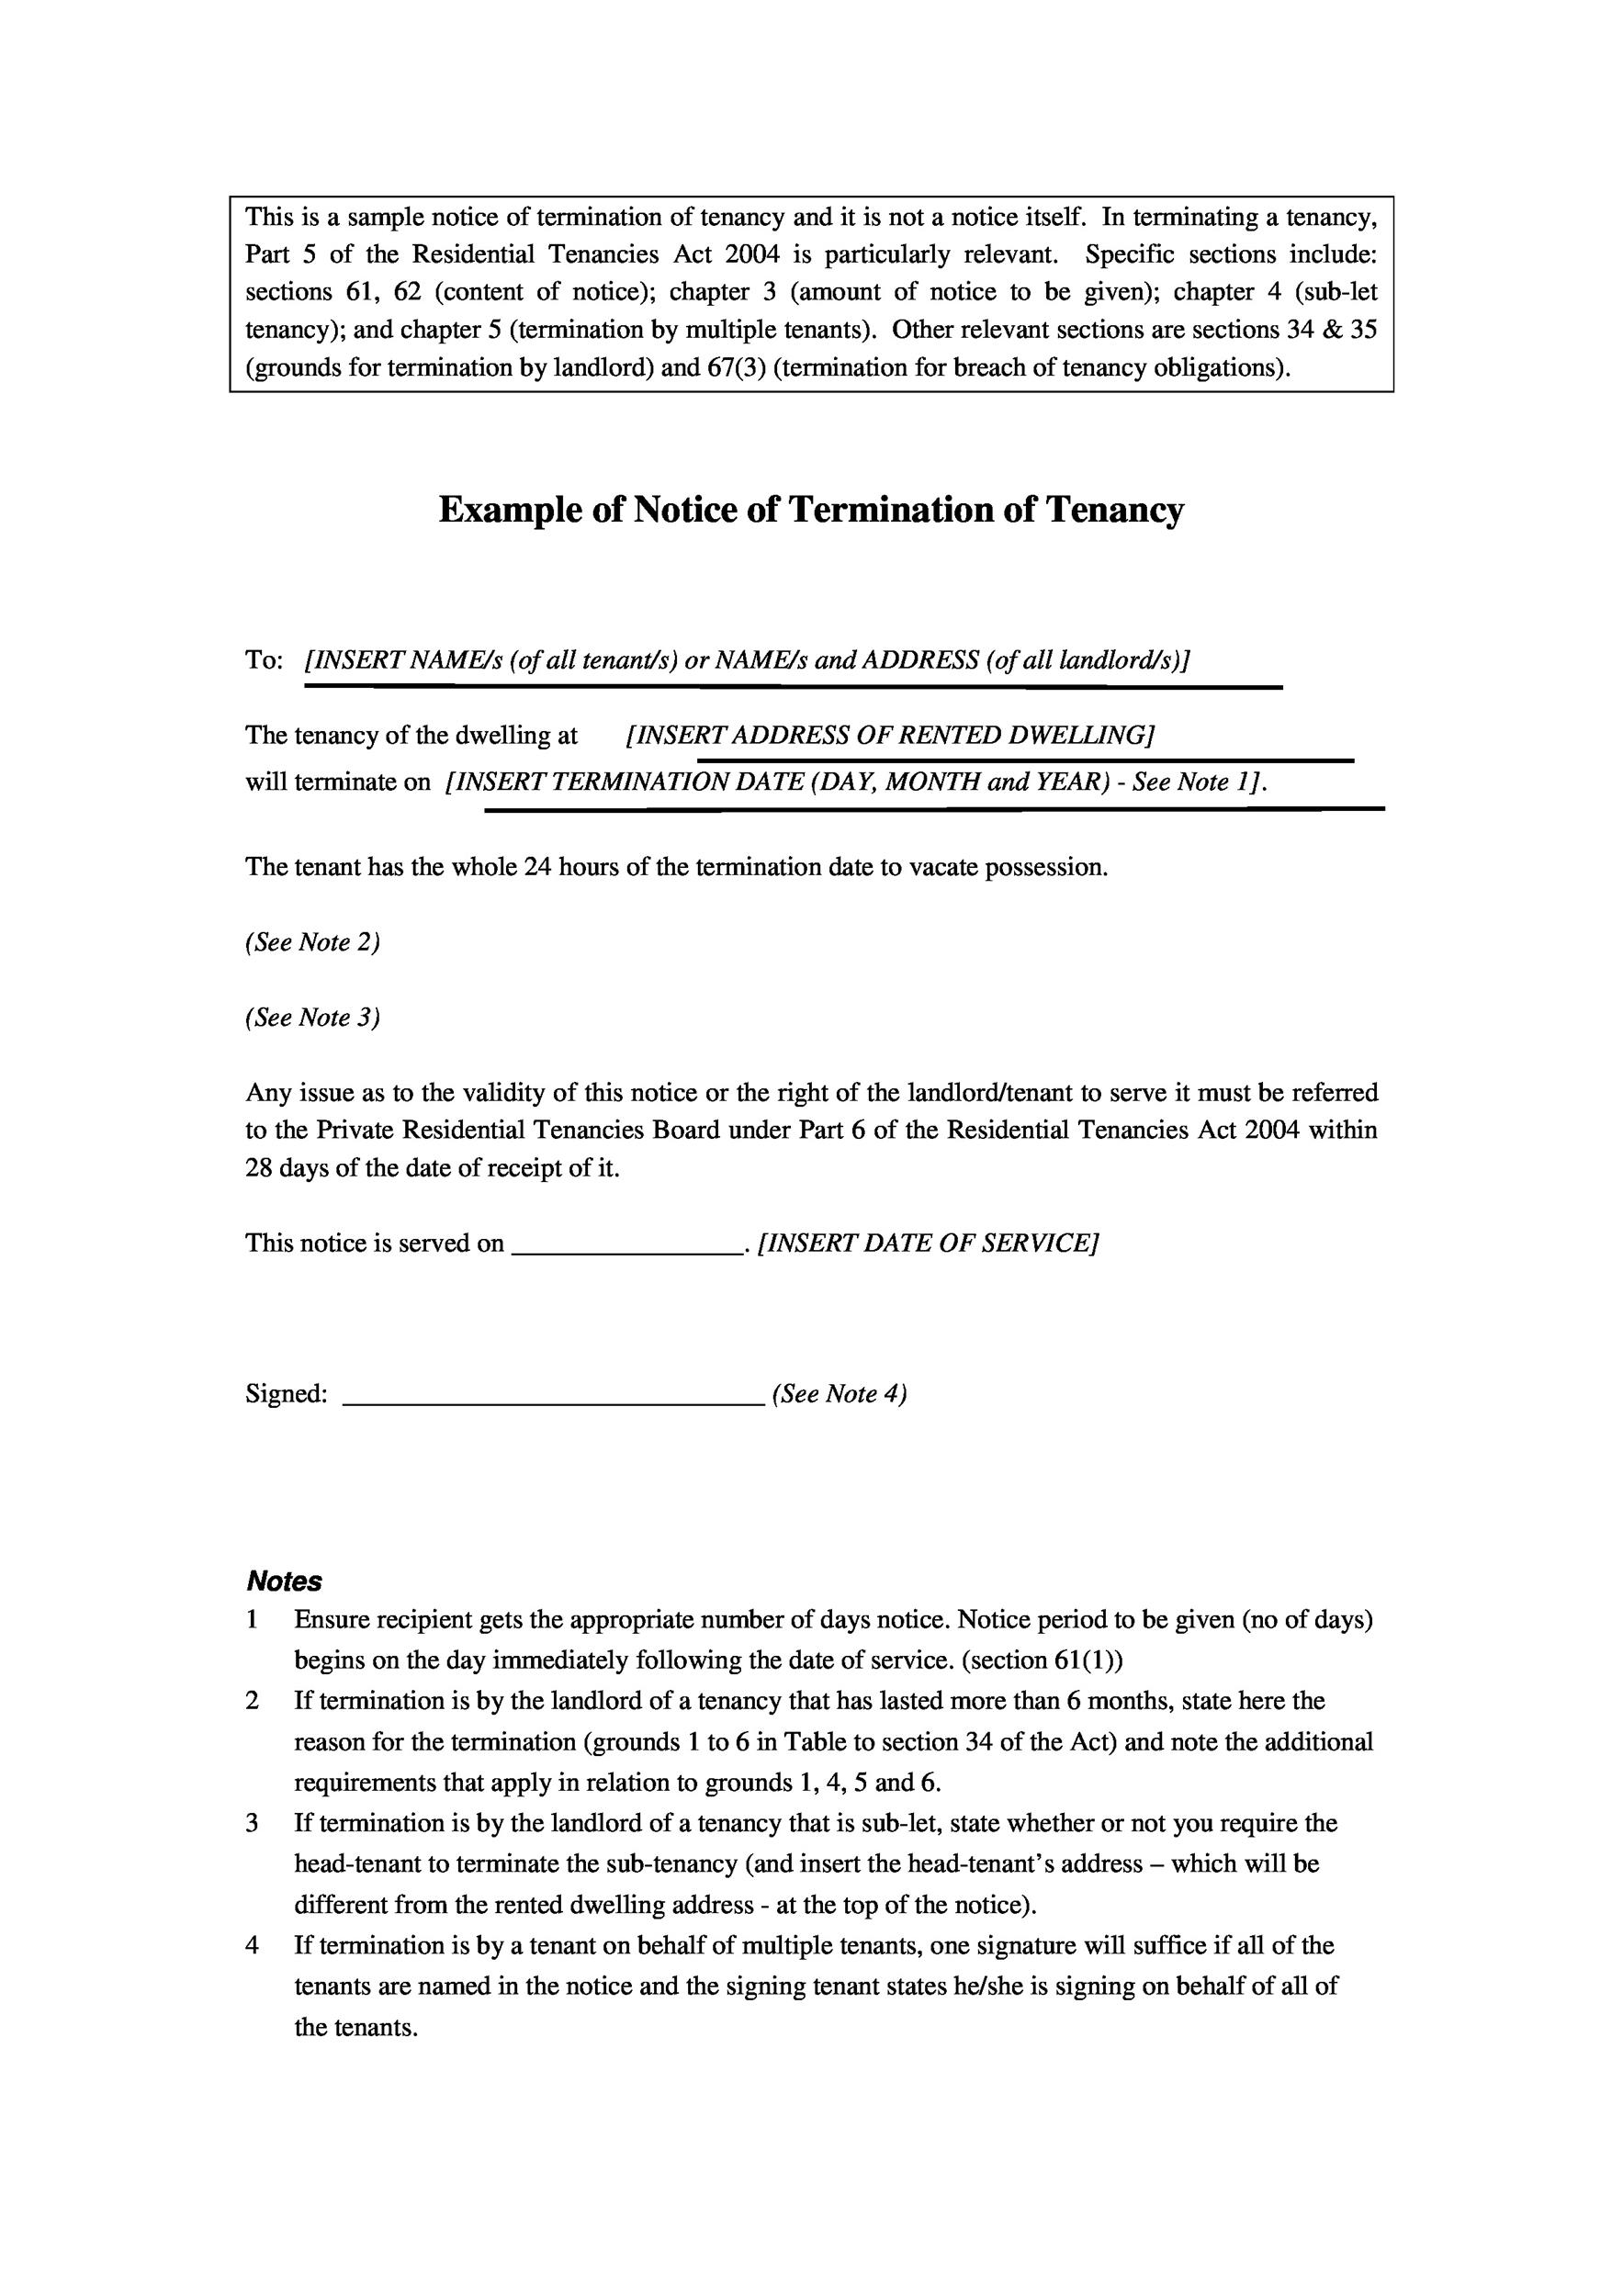 Free Example of Notice of Termination of Tenancy